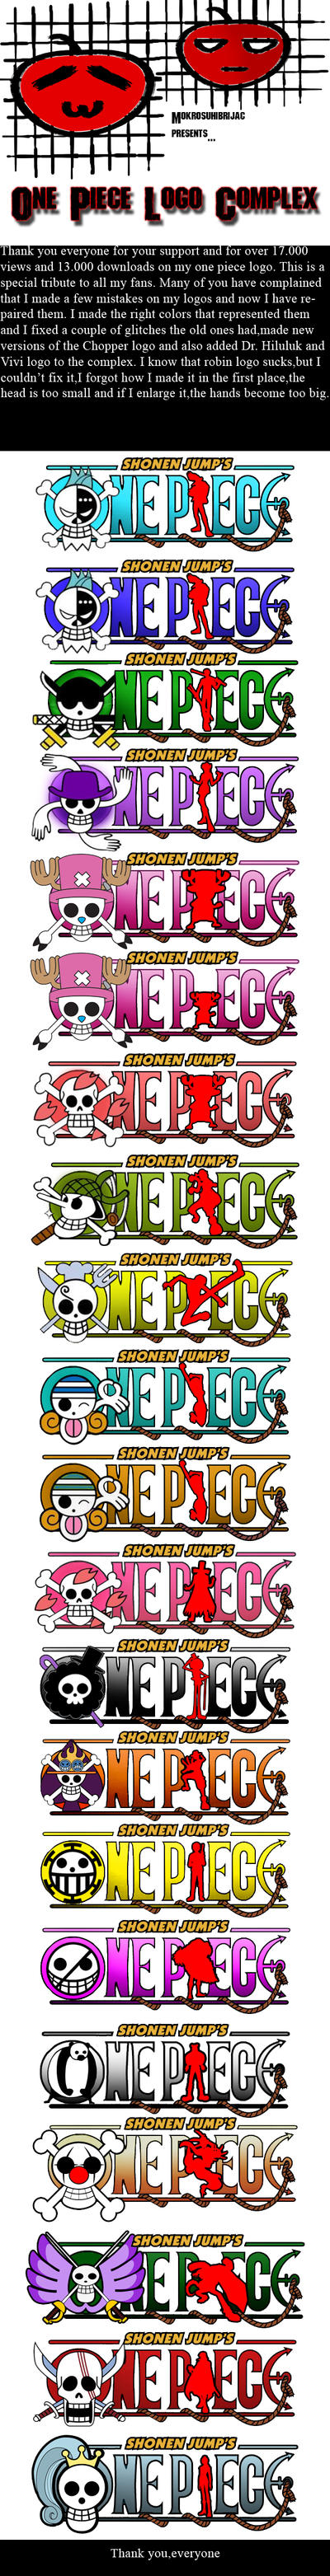 One Piece logo Complex by Mokrosuhibrijac